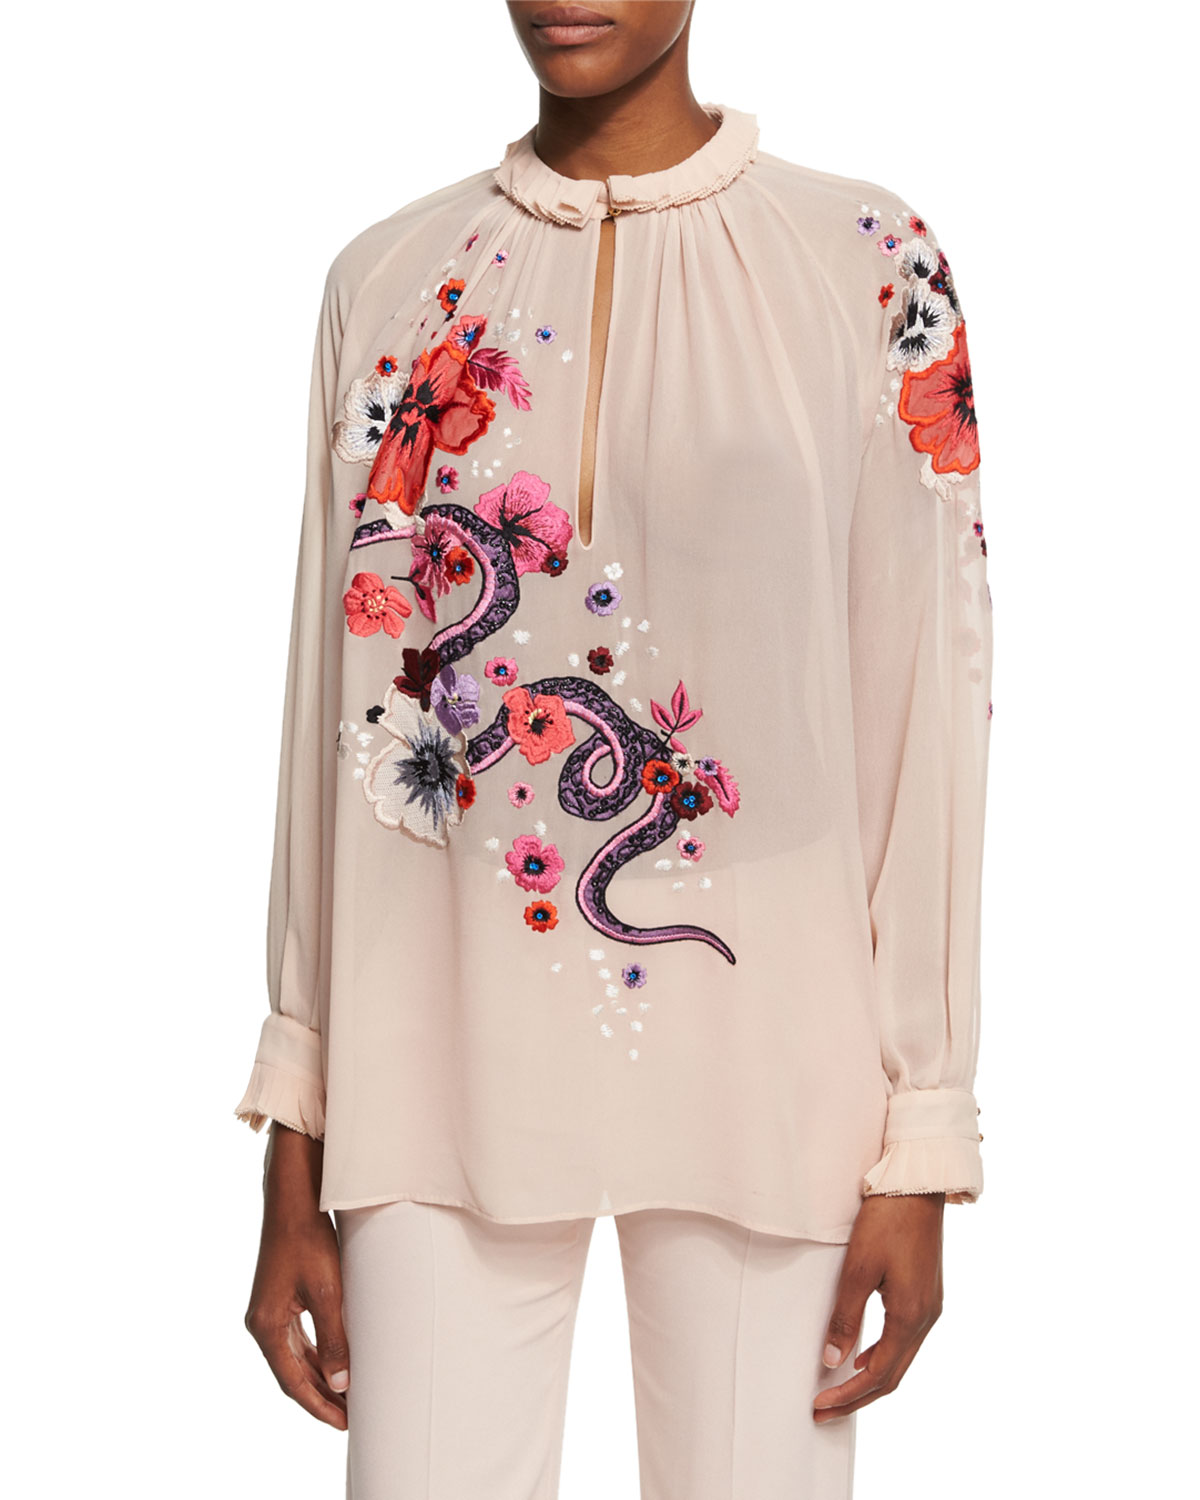 Embroidered Snake & Floral Chiffon Blouse, Pink